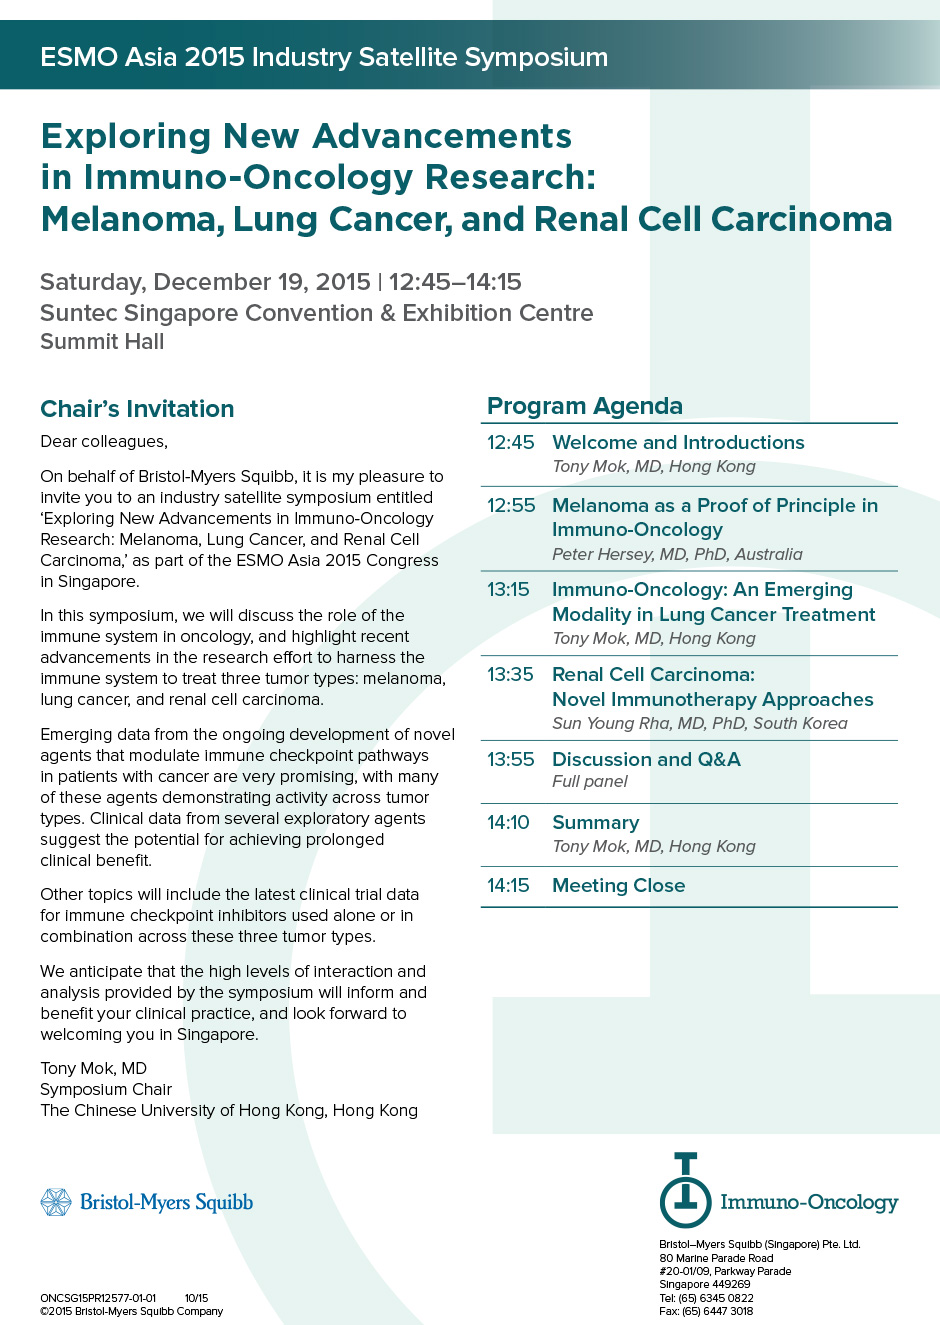 Exploring New Advancements in Immuno-Oncology Research: Melanoma Lung Cancer and Renal Cell Carcinoma